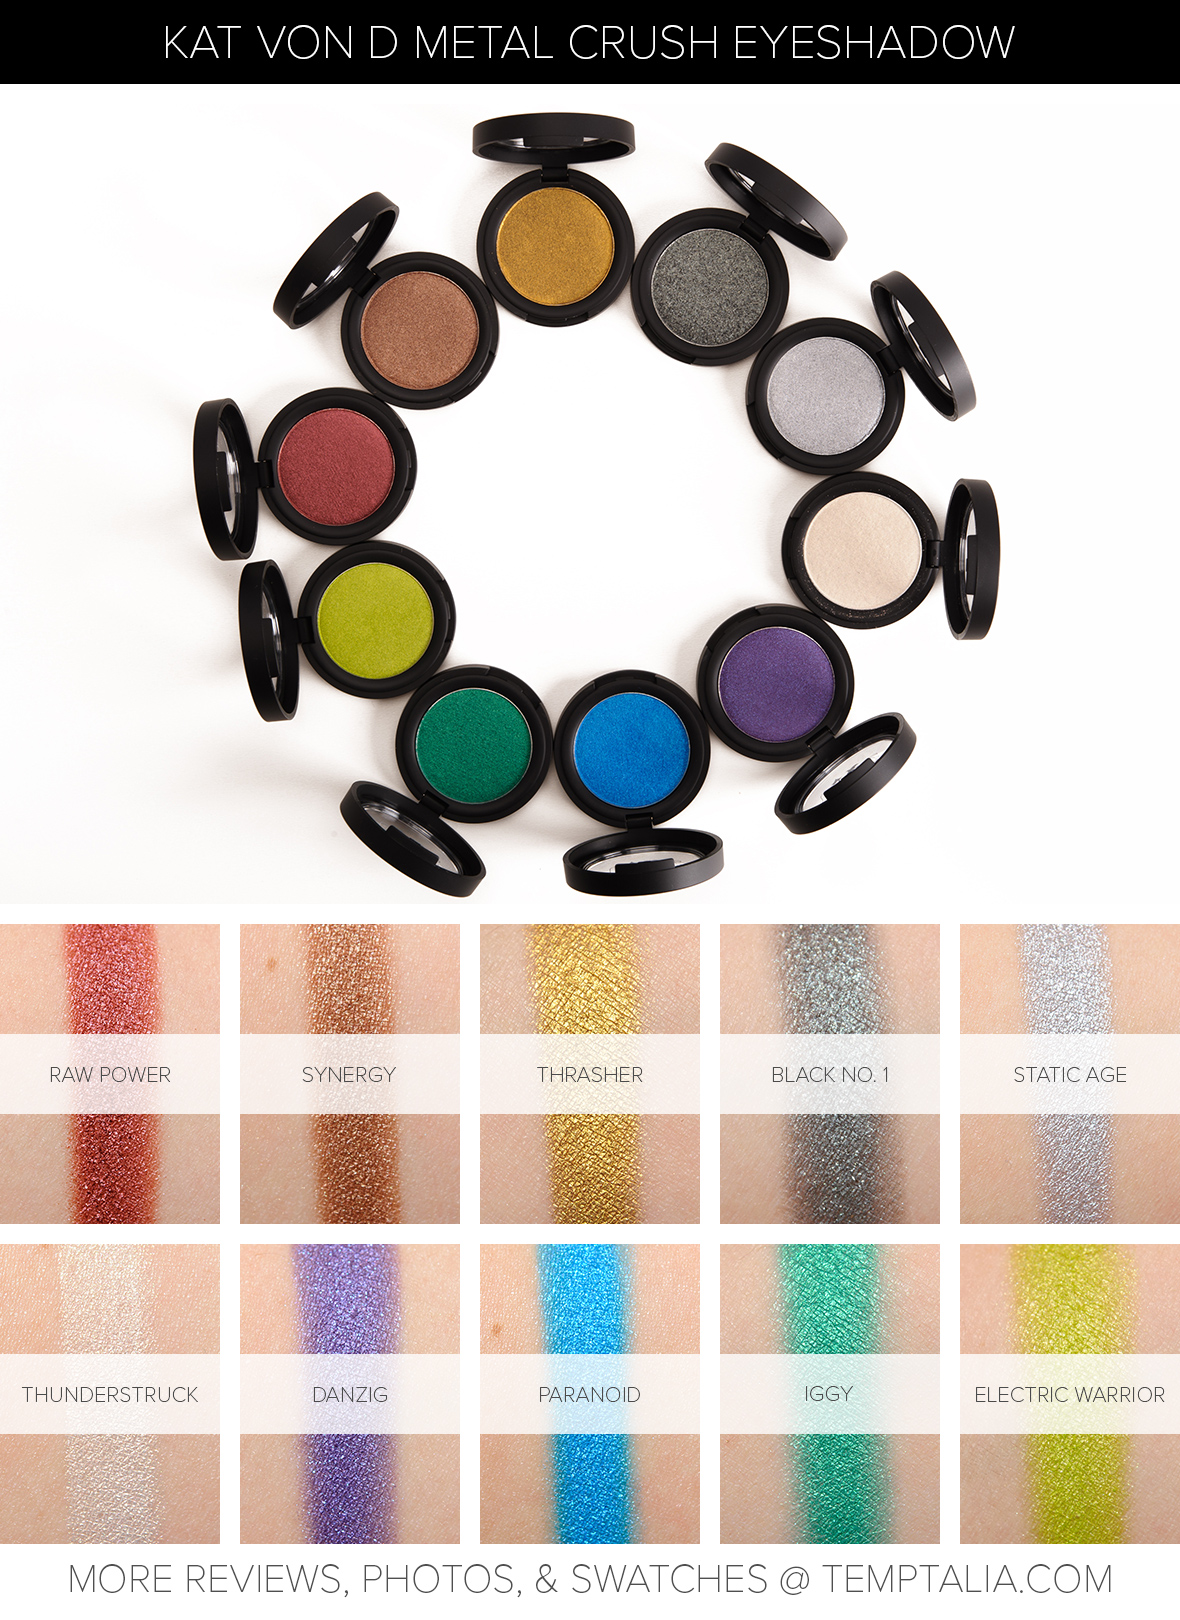 Kat Von D Metal Crush Eyeshadows Photos